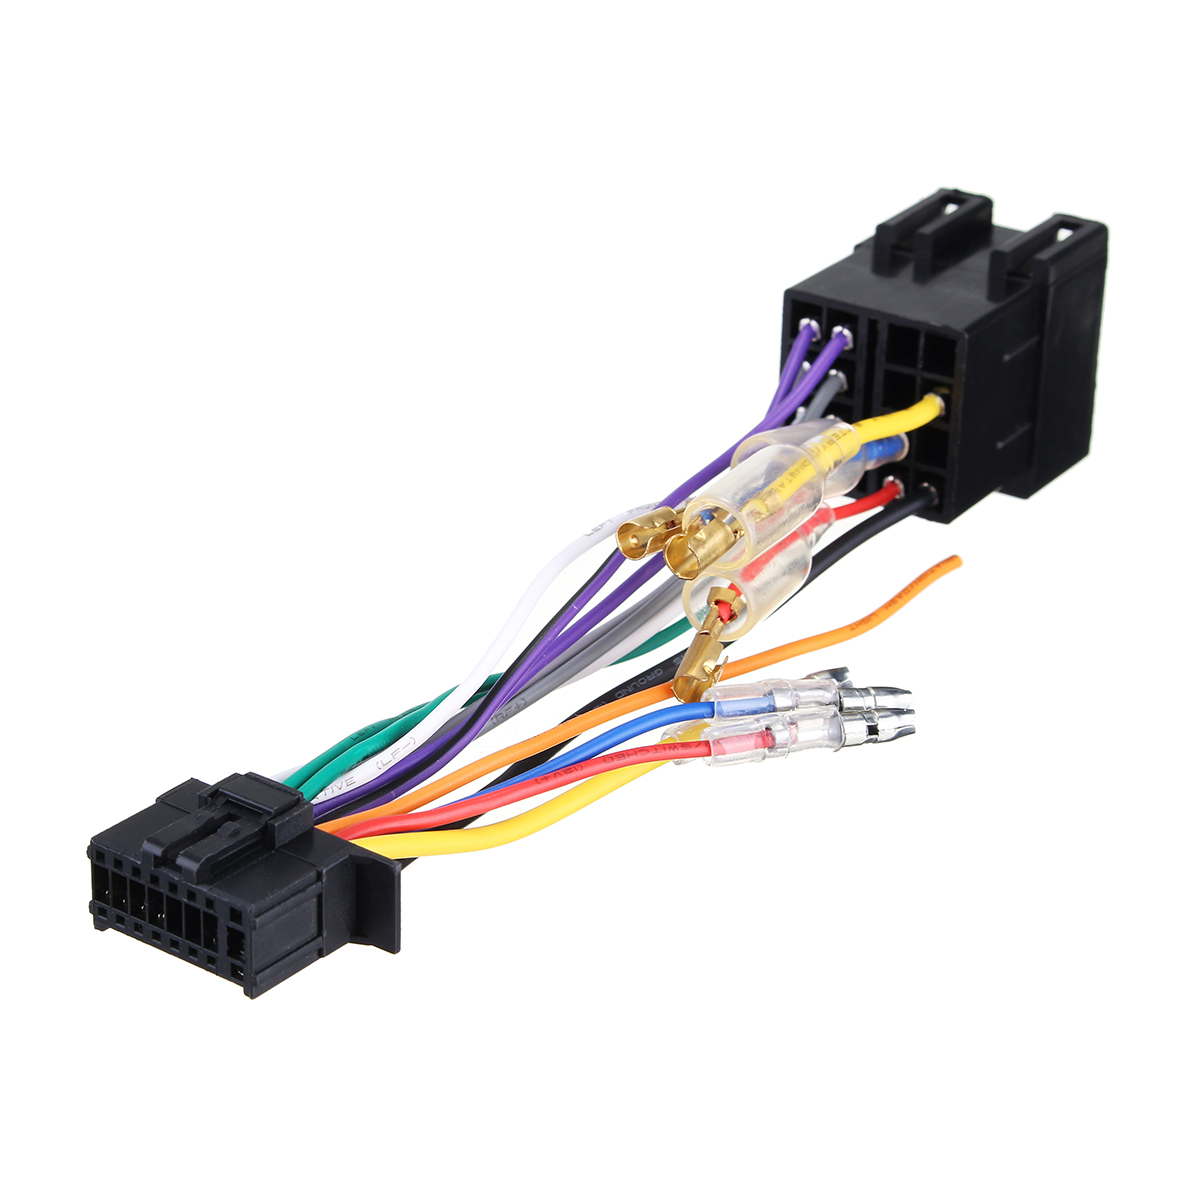 hight resolution of 16pin car stereo radio wiring harness connector plug iso pi100 for pioneer 03 on 5942196a 9fa8 41fe a49d 300de538b94c